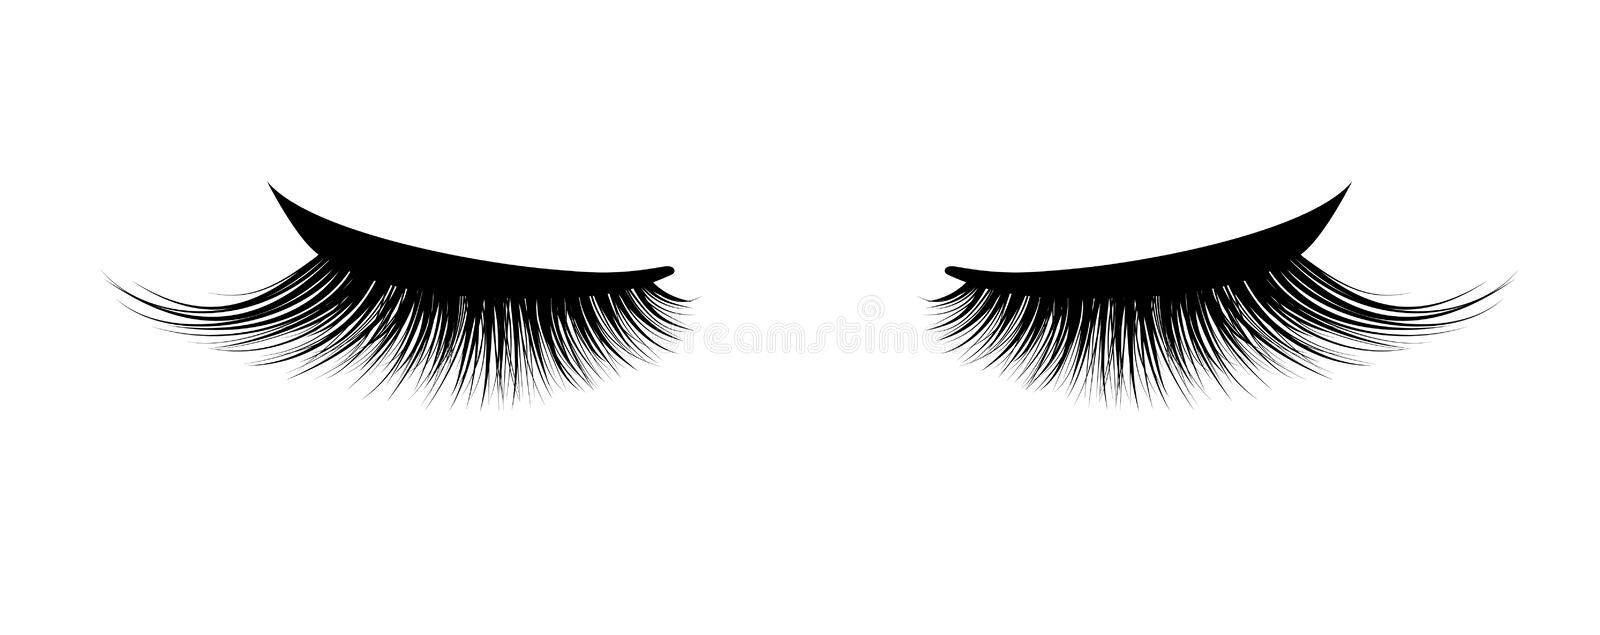 Eyelash extension. A beautiful make-up. Thick cilia. Mascara for volume and length. royalty free illustration